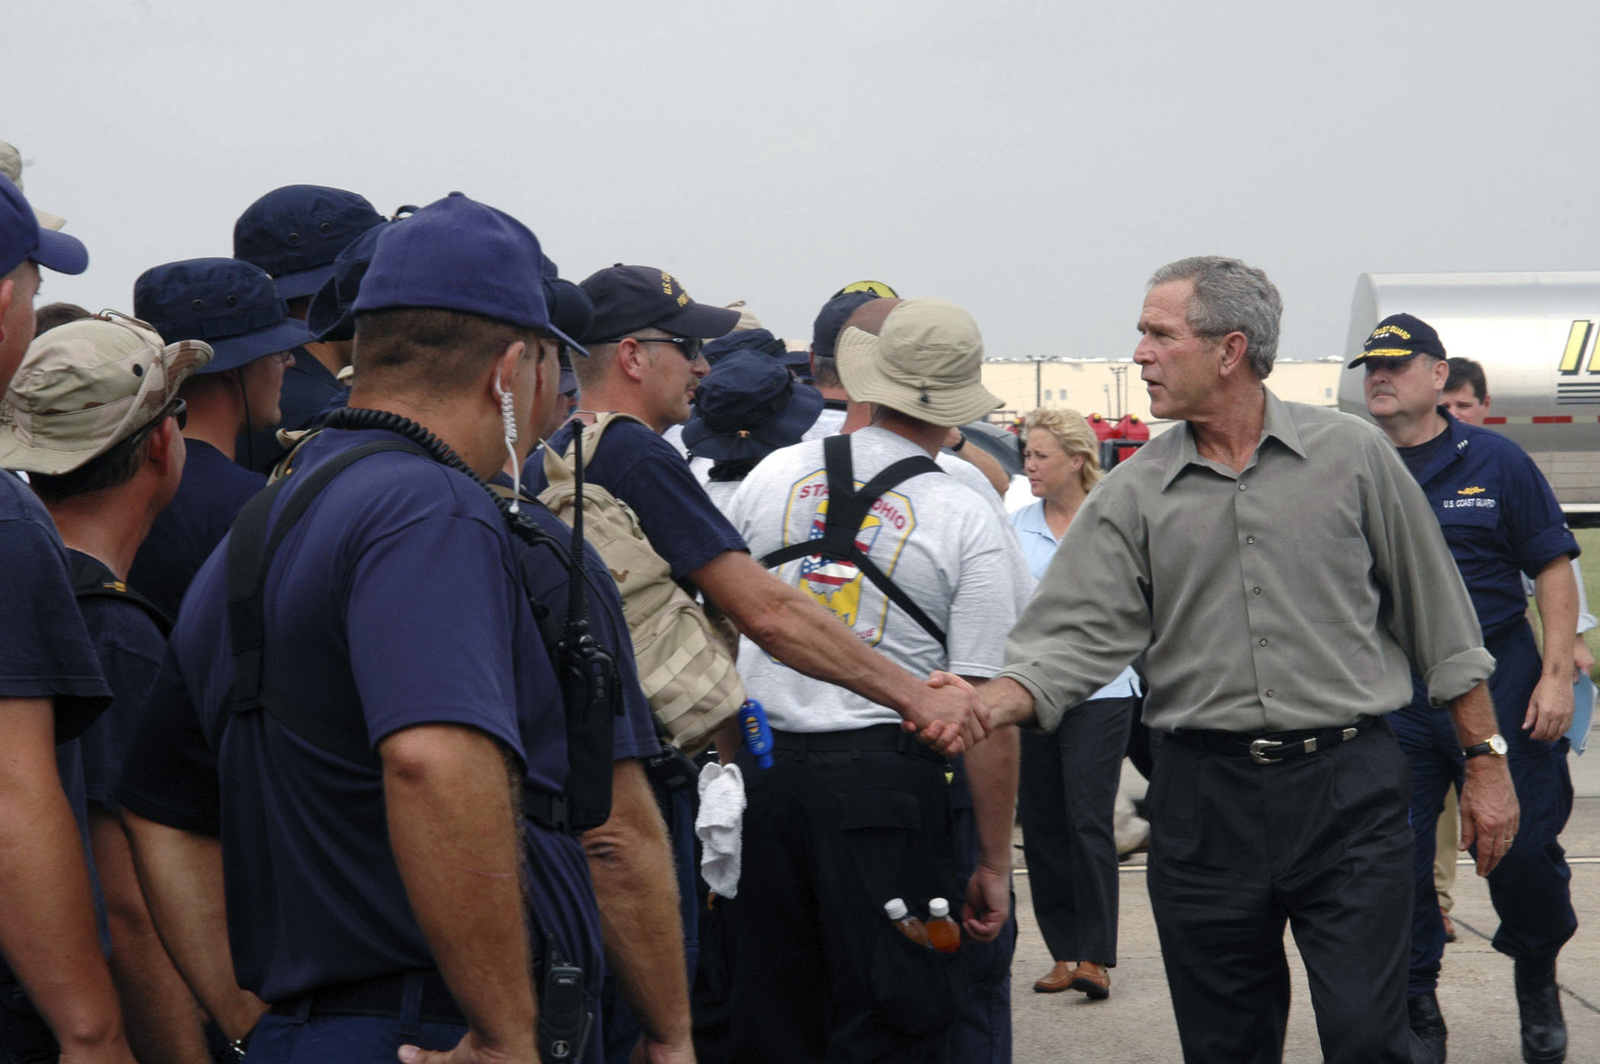 US President George W. Bush visits with US Coast Guard (USCG) and Joint Task Force (JTF) personnel responding to Hurricane Rita at a staging point in Lake Charles, Louisiana (LA). Department of Defense (DoD) units mobilized in support of humanitarian relief operations in the Gulf Coast region. (Duplicate image see also DDSD0605736 or search 050927G0000O001)